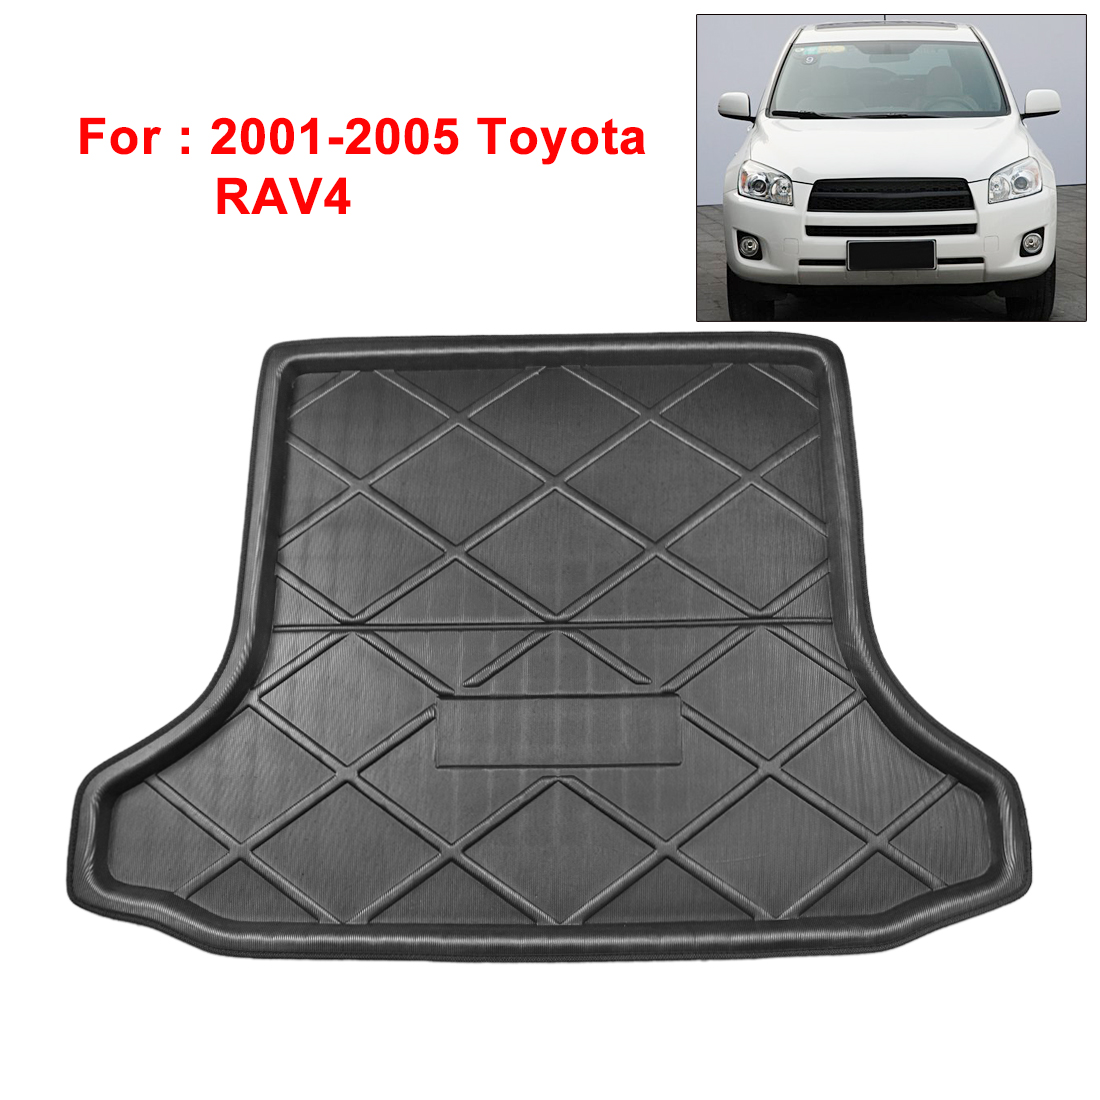 X Autohaux PE+EVA Foam Plastic Black Anti-dirty Rear Trunk Boot Liner Cargo Mat Floor Tray Cover Pad For Toyota RAV4 2001-2005